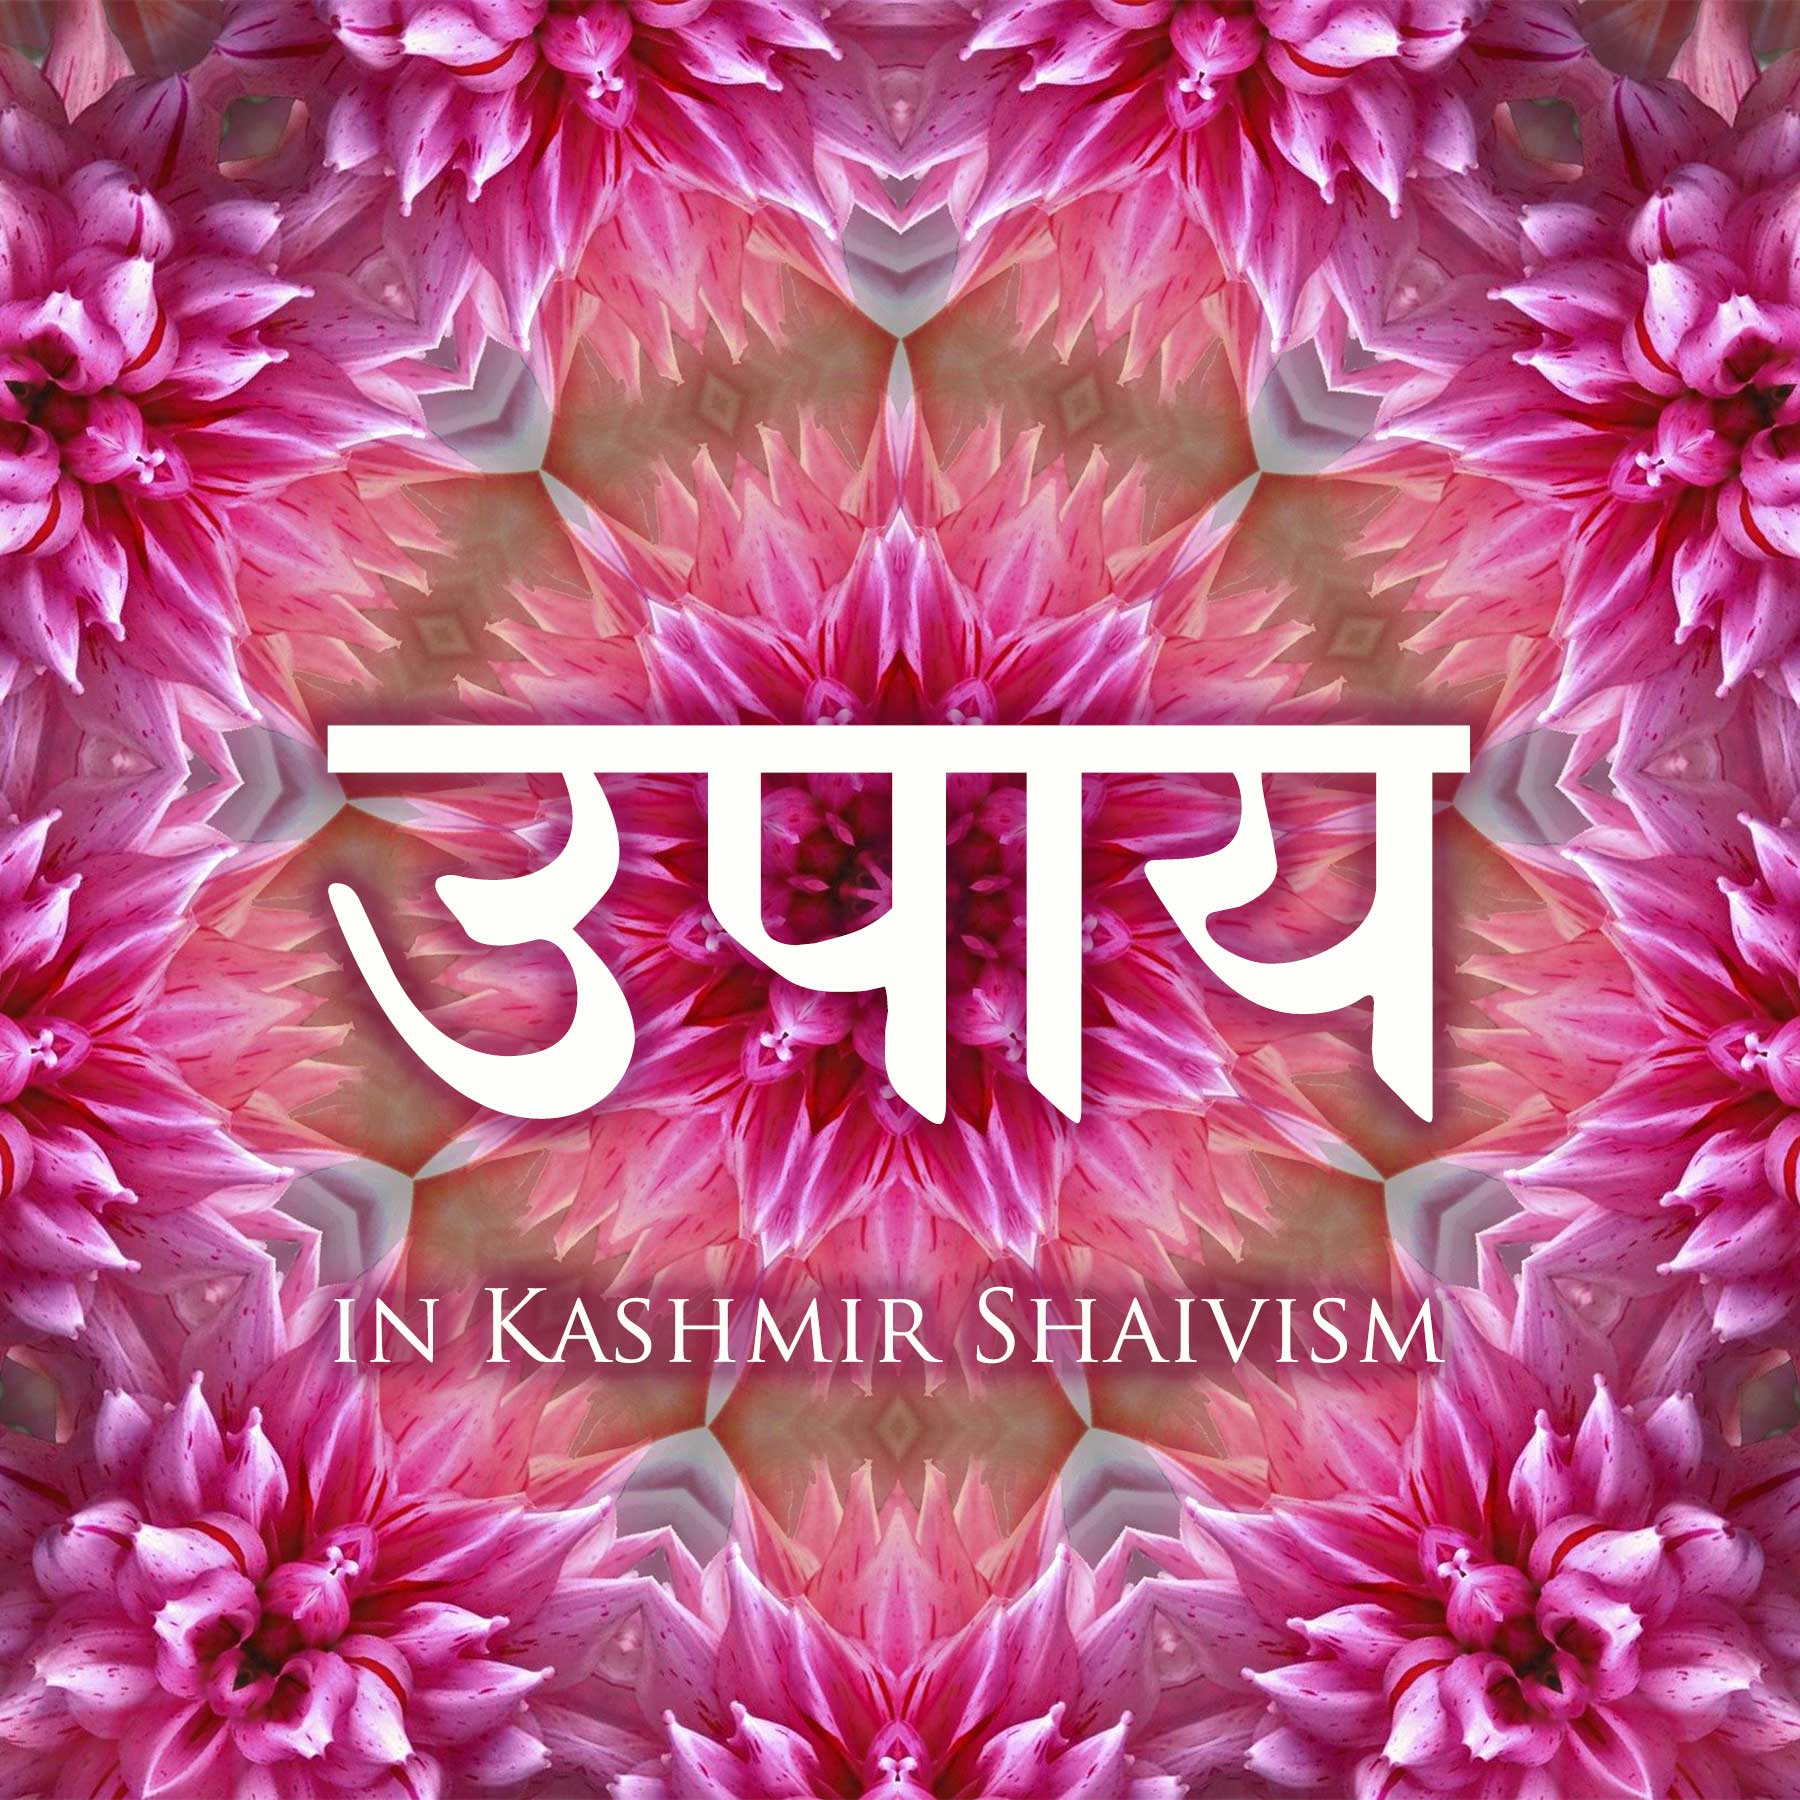 Understanding the 112 meditations of the Vijnana Bhairava Tantra in Kashmir Shaivism